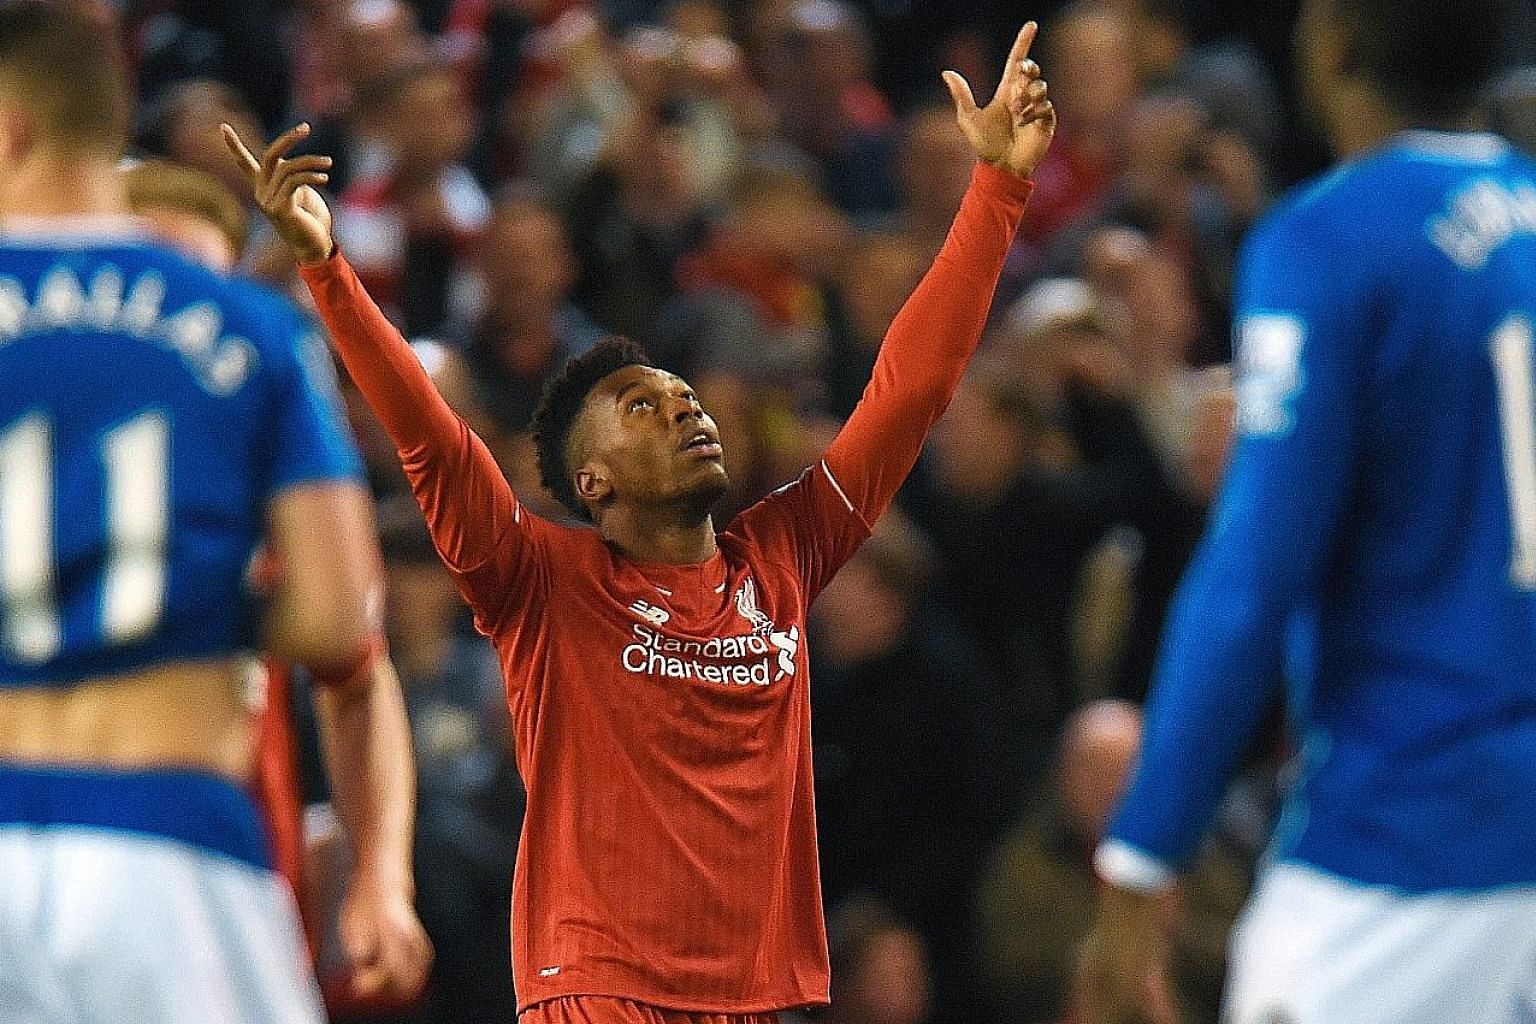 Daniel Sturridge celebrating after putting Liverpool three goals up against Everton. The Reds are on a rich run of form as Juergen Klopp's style starts to work magic.